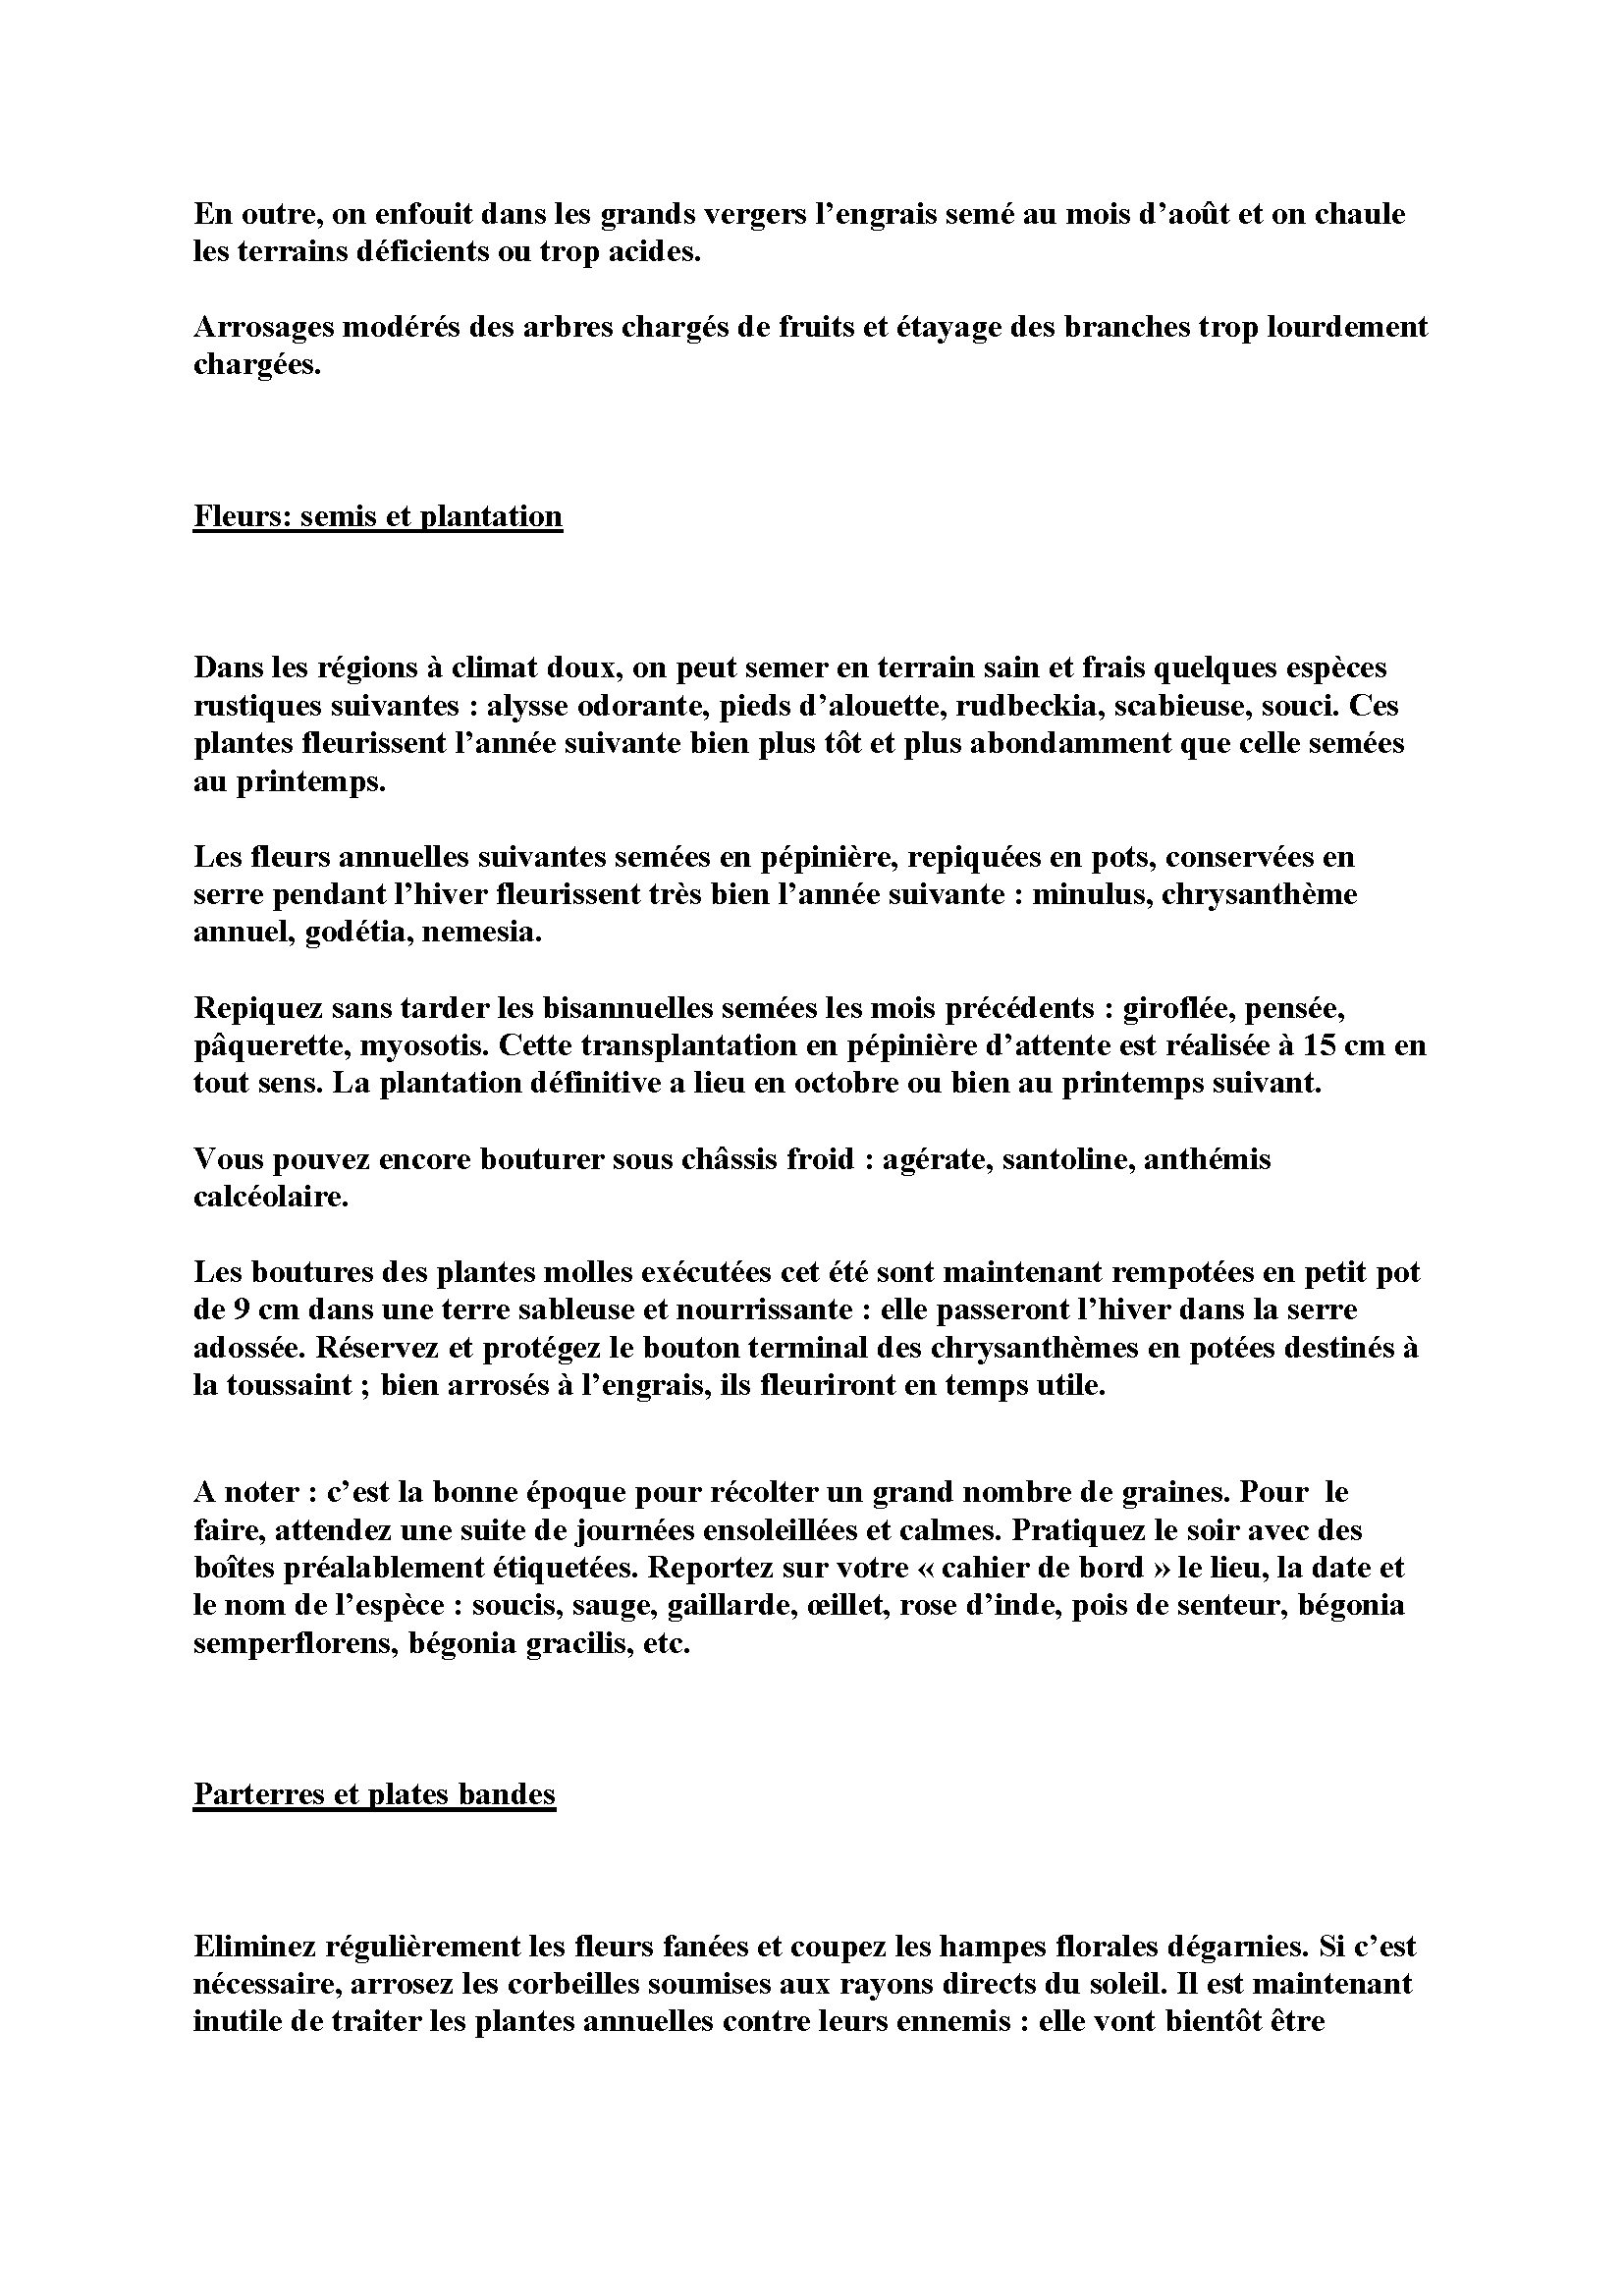 http://palife.free.fr/up/Travaux%20de%20septembre_Page_06.png